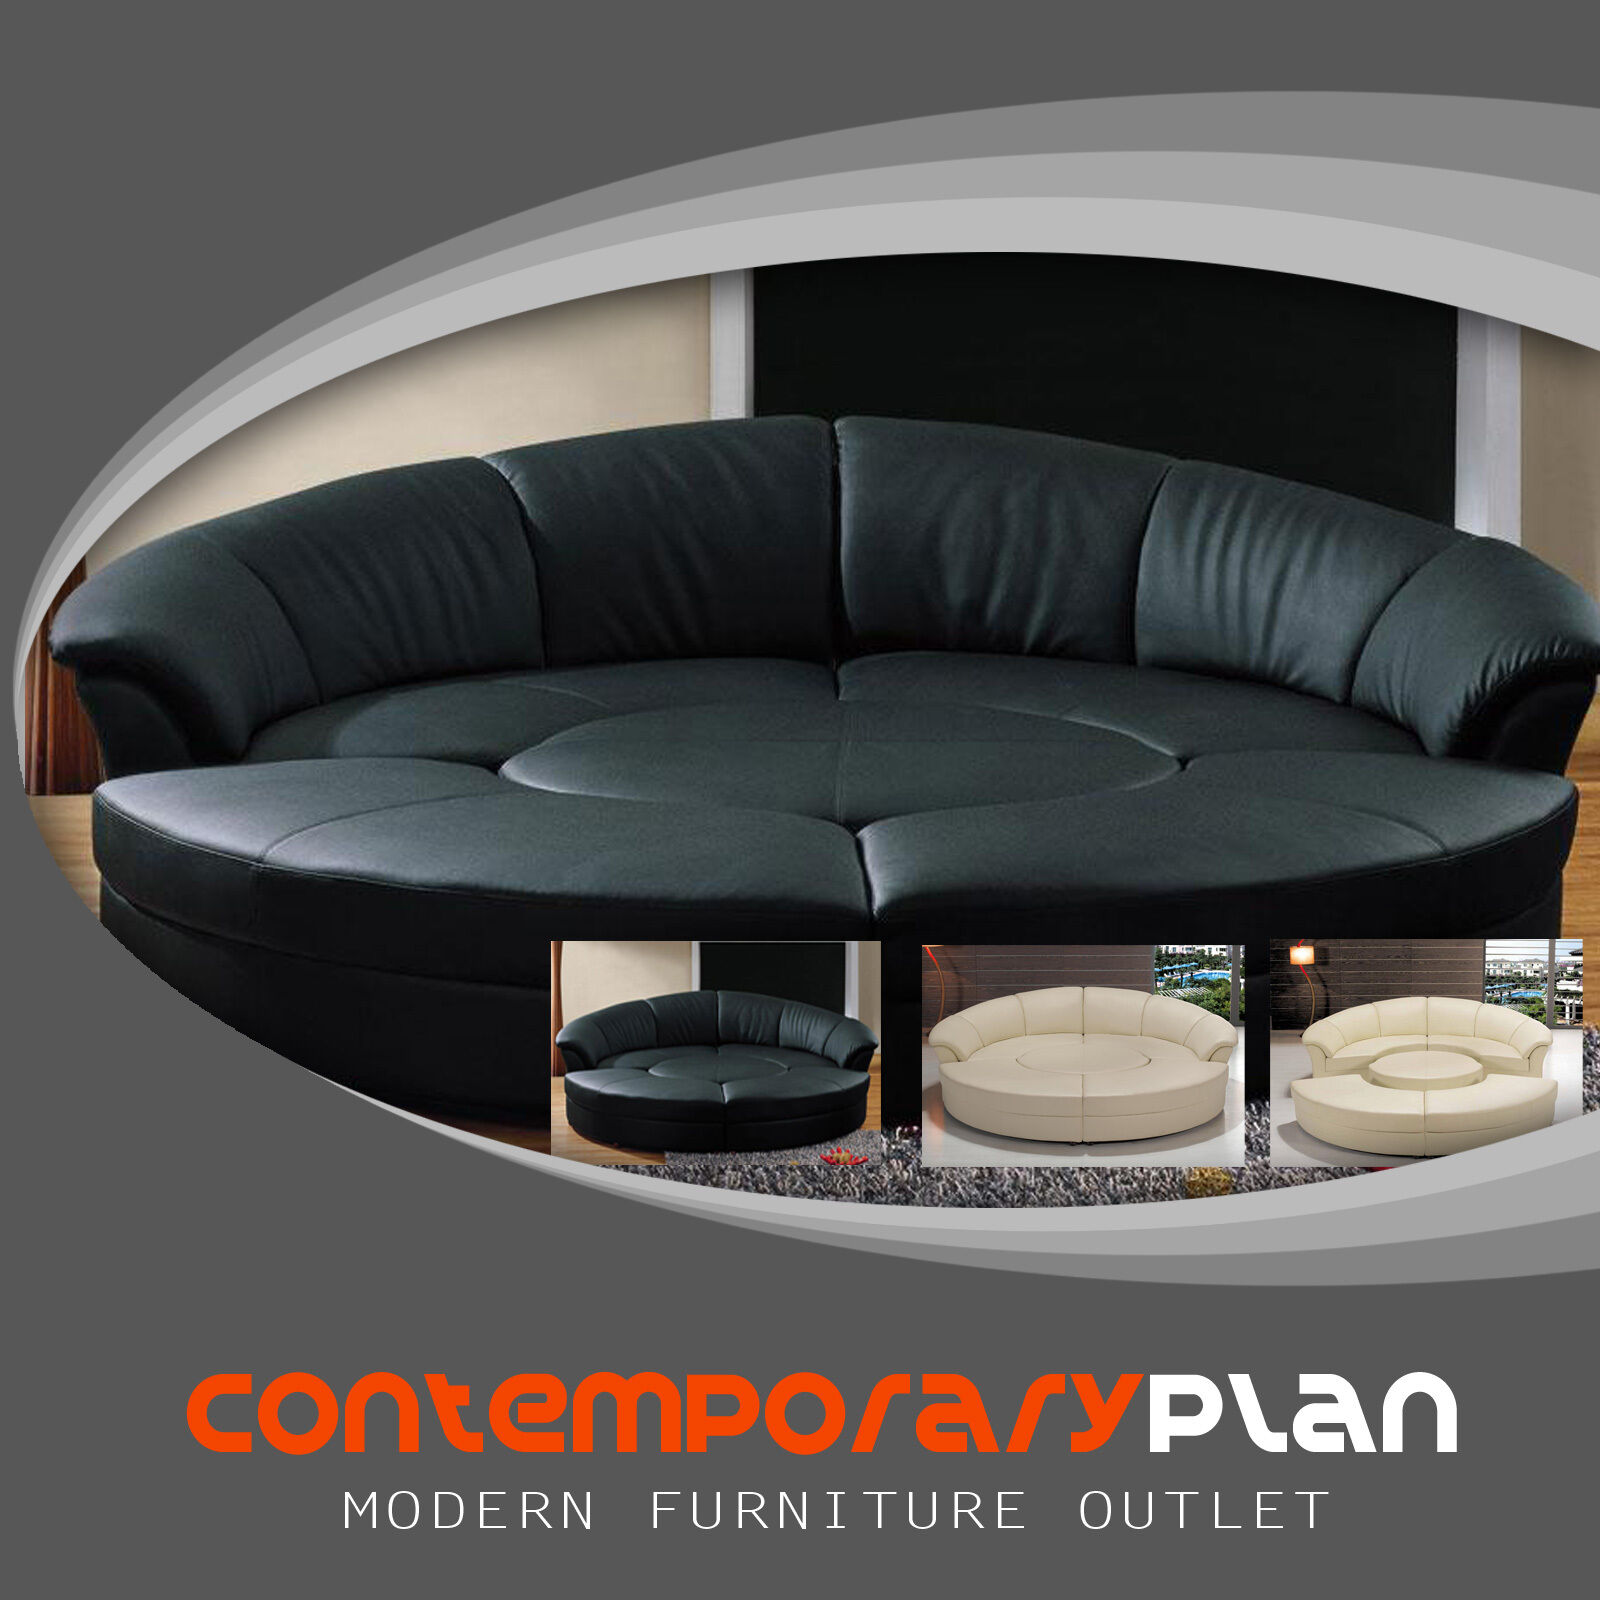 Round 5 Piece Living Room Sectional Couch Set with round tab